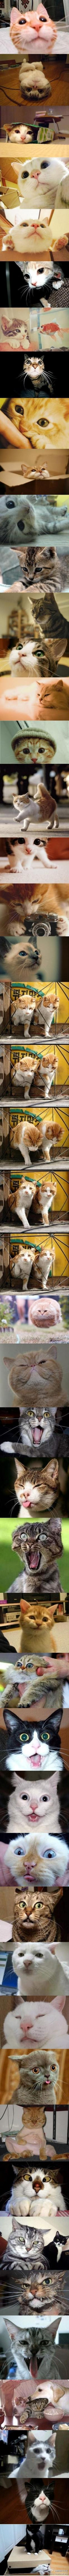 cat cat cat ...: Kitty Cats, Kitty Faces, Cats 3, Funny Cats, Crazy Cat, Cat Faces, Cat Lady, Animal